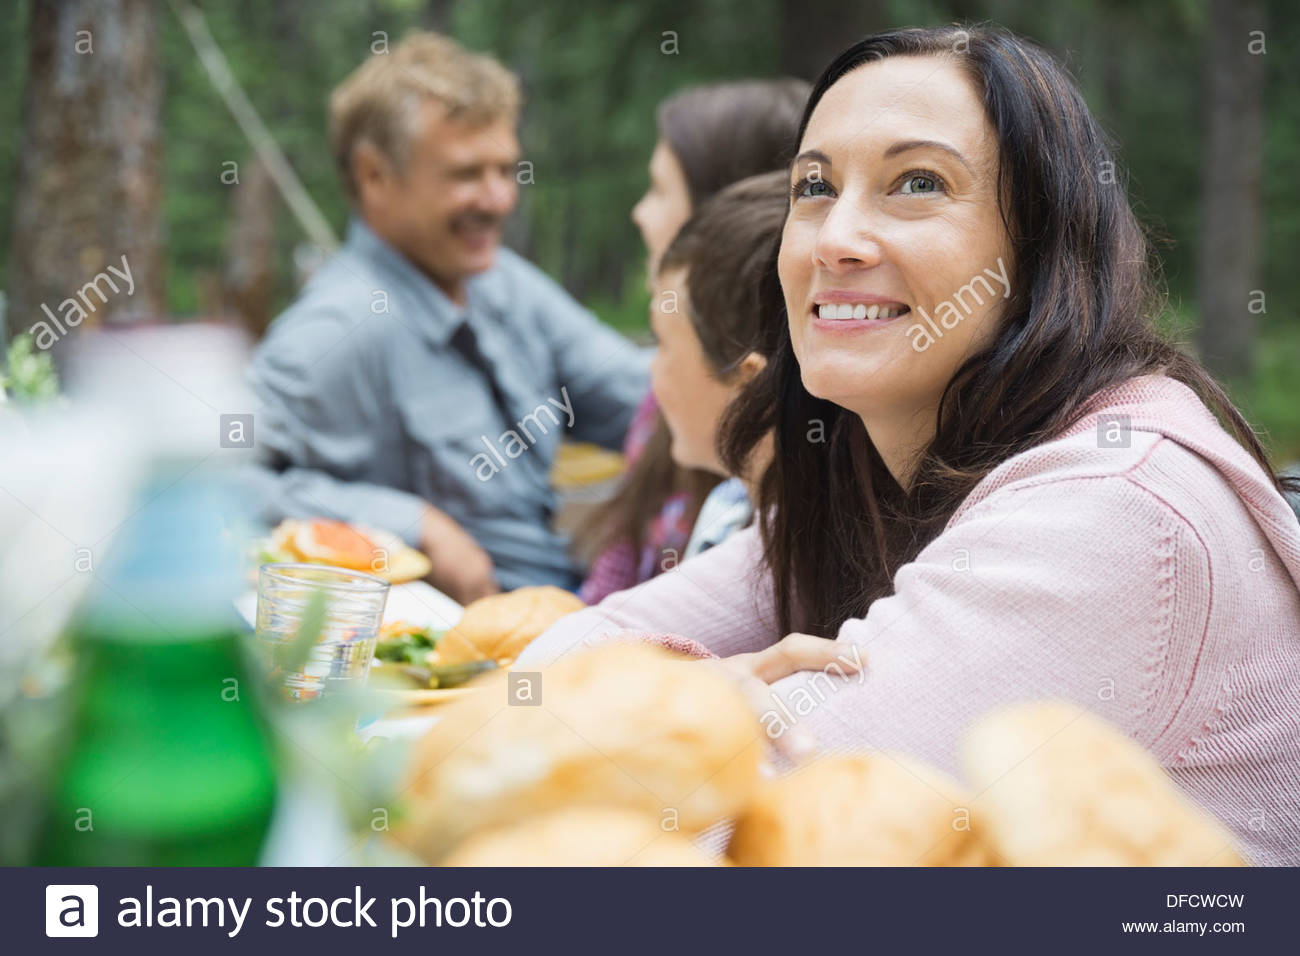 Woman enjoying meal with family at campsite - Stock Image